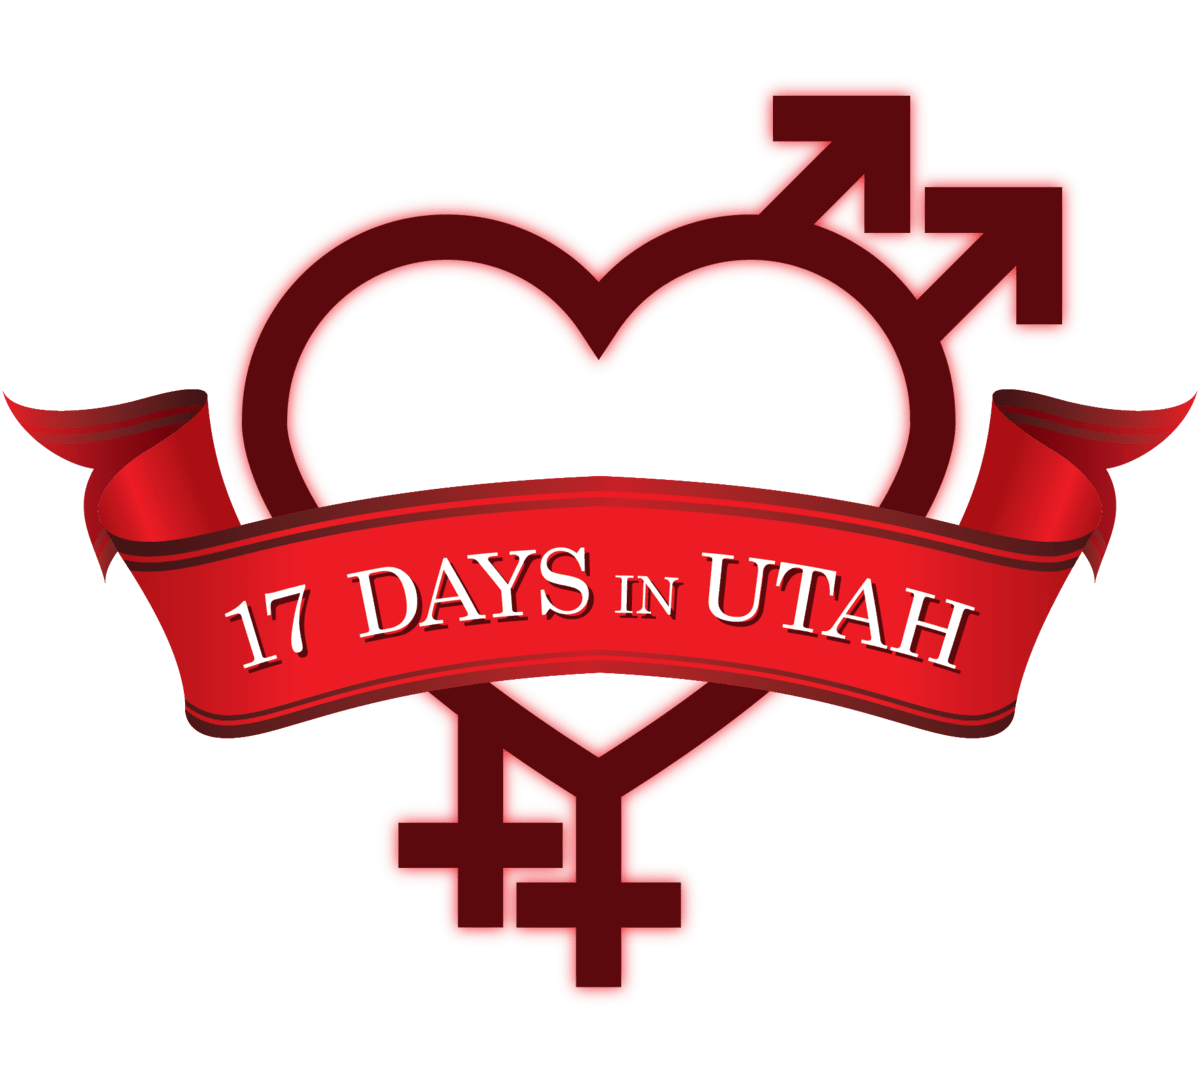 Photo of Website spreads love stories from Utah's 17 days of equality